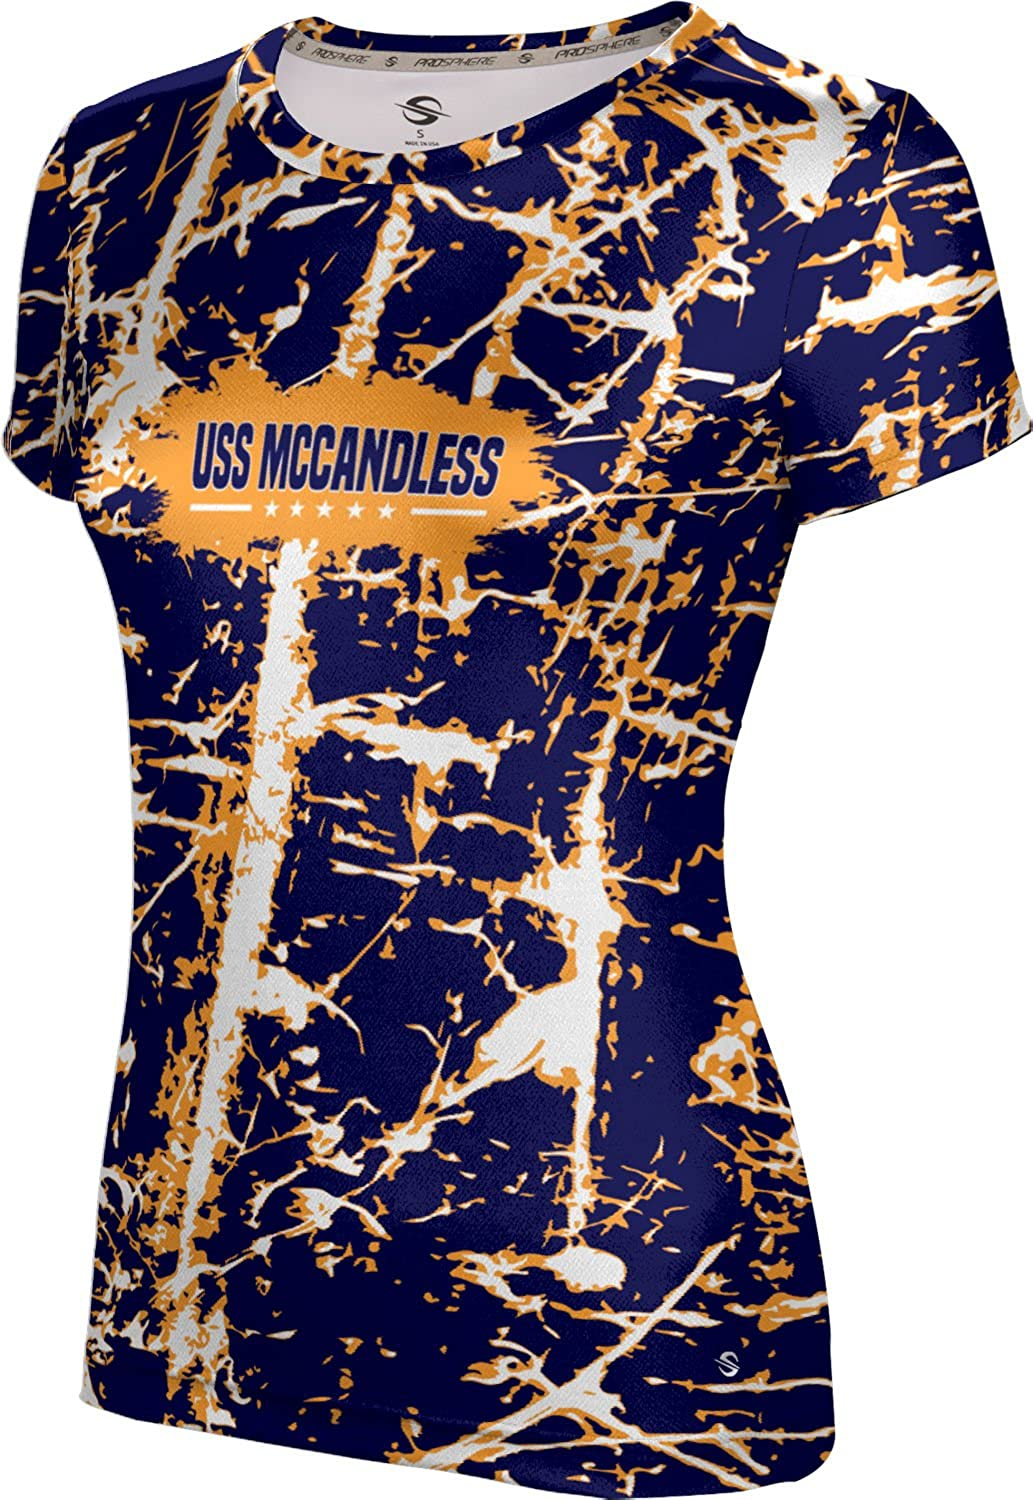 ProSphere Women's USS McCandless Military Distressed Tech Tee